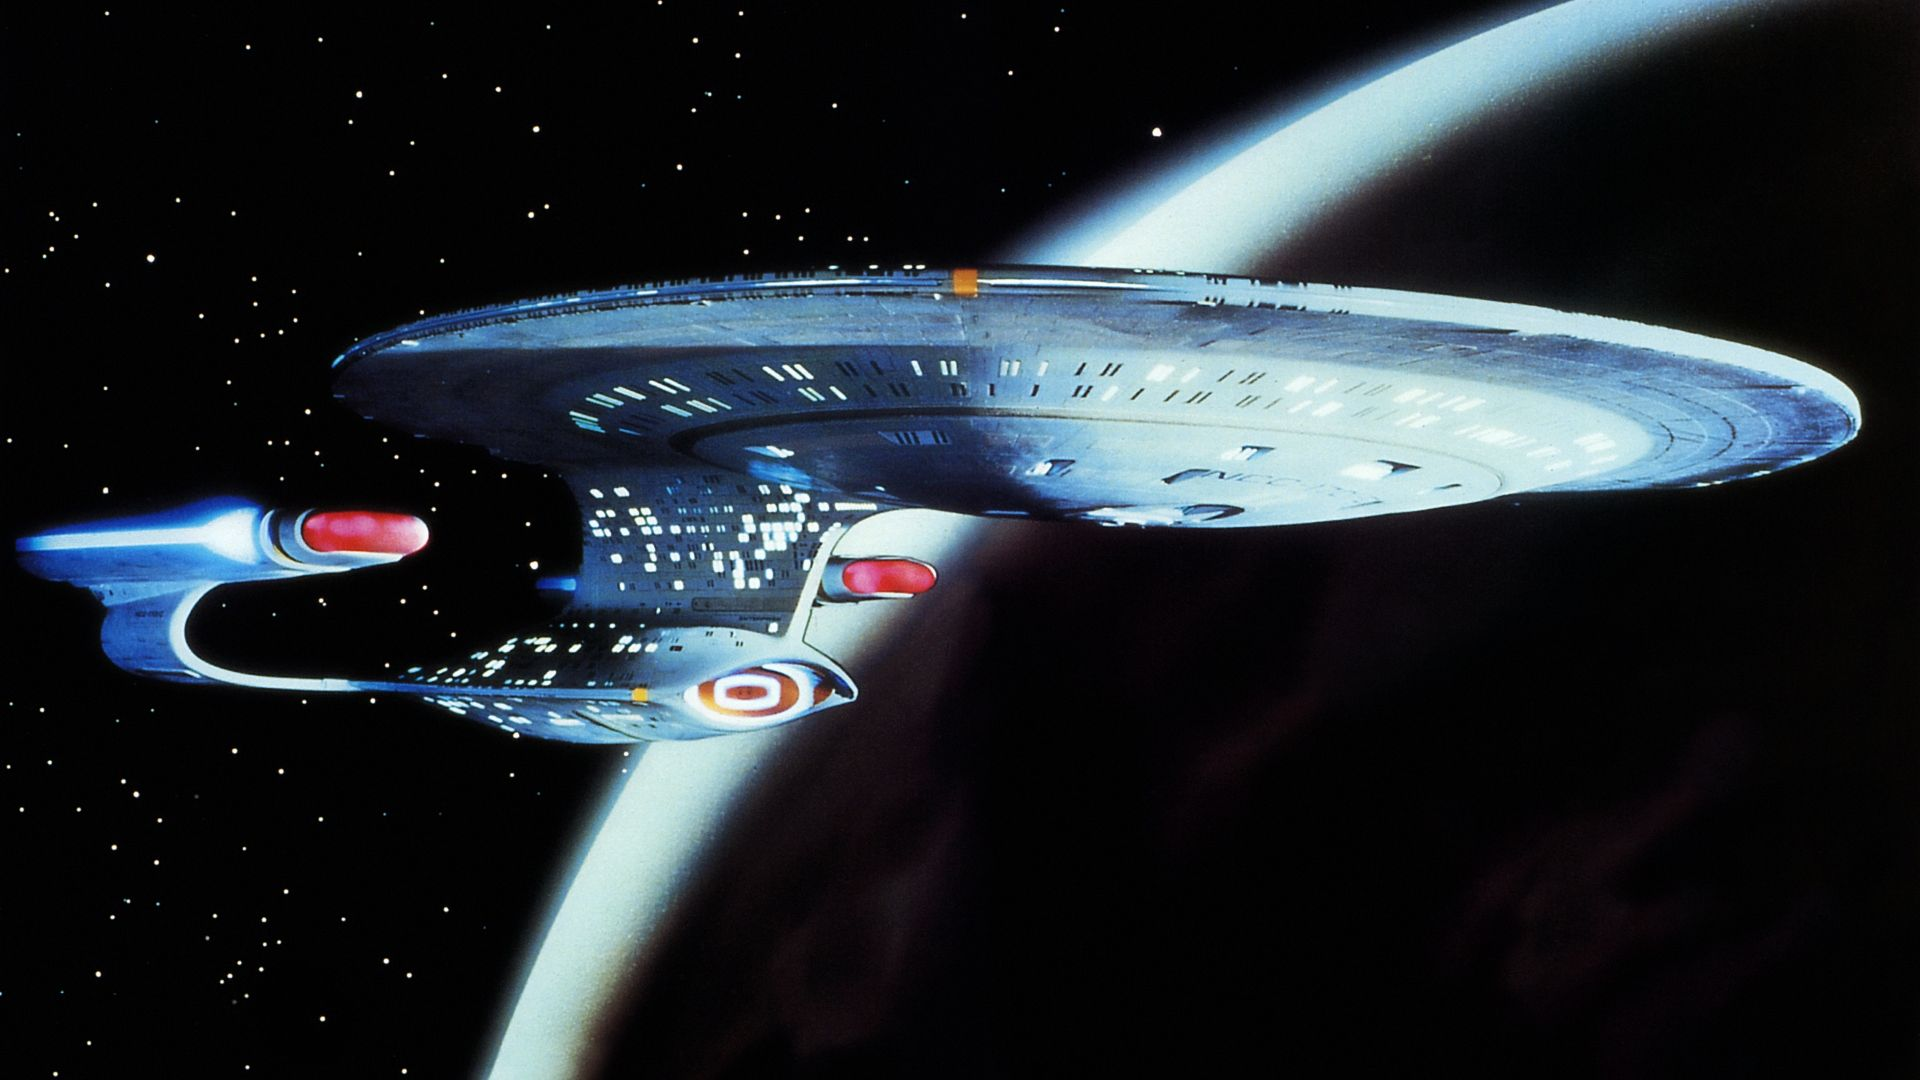 20 Space Wallpapers That Are Out of This World Star trek